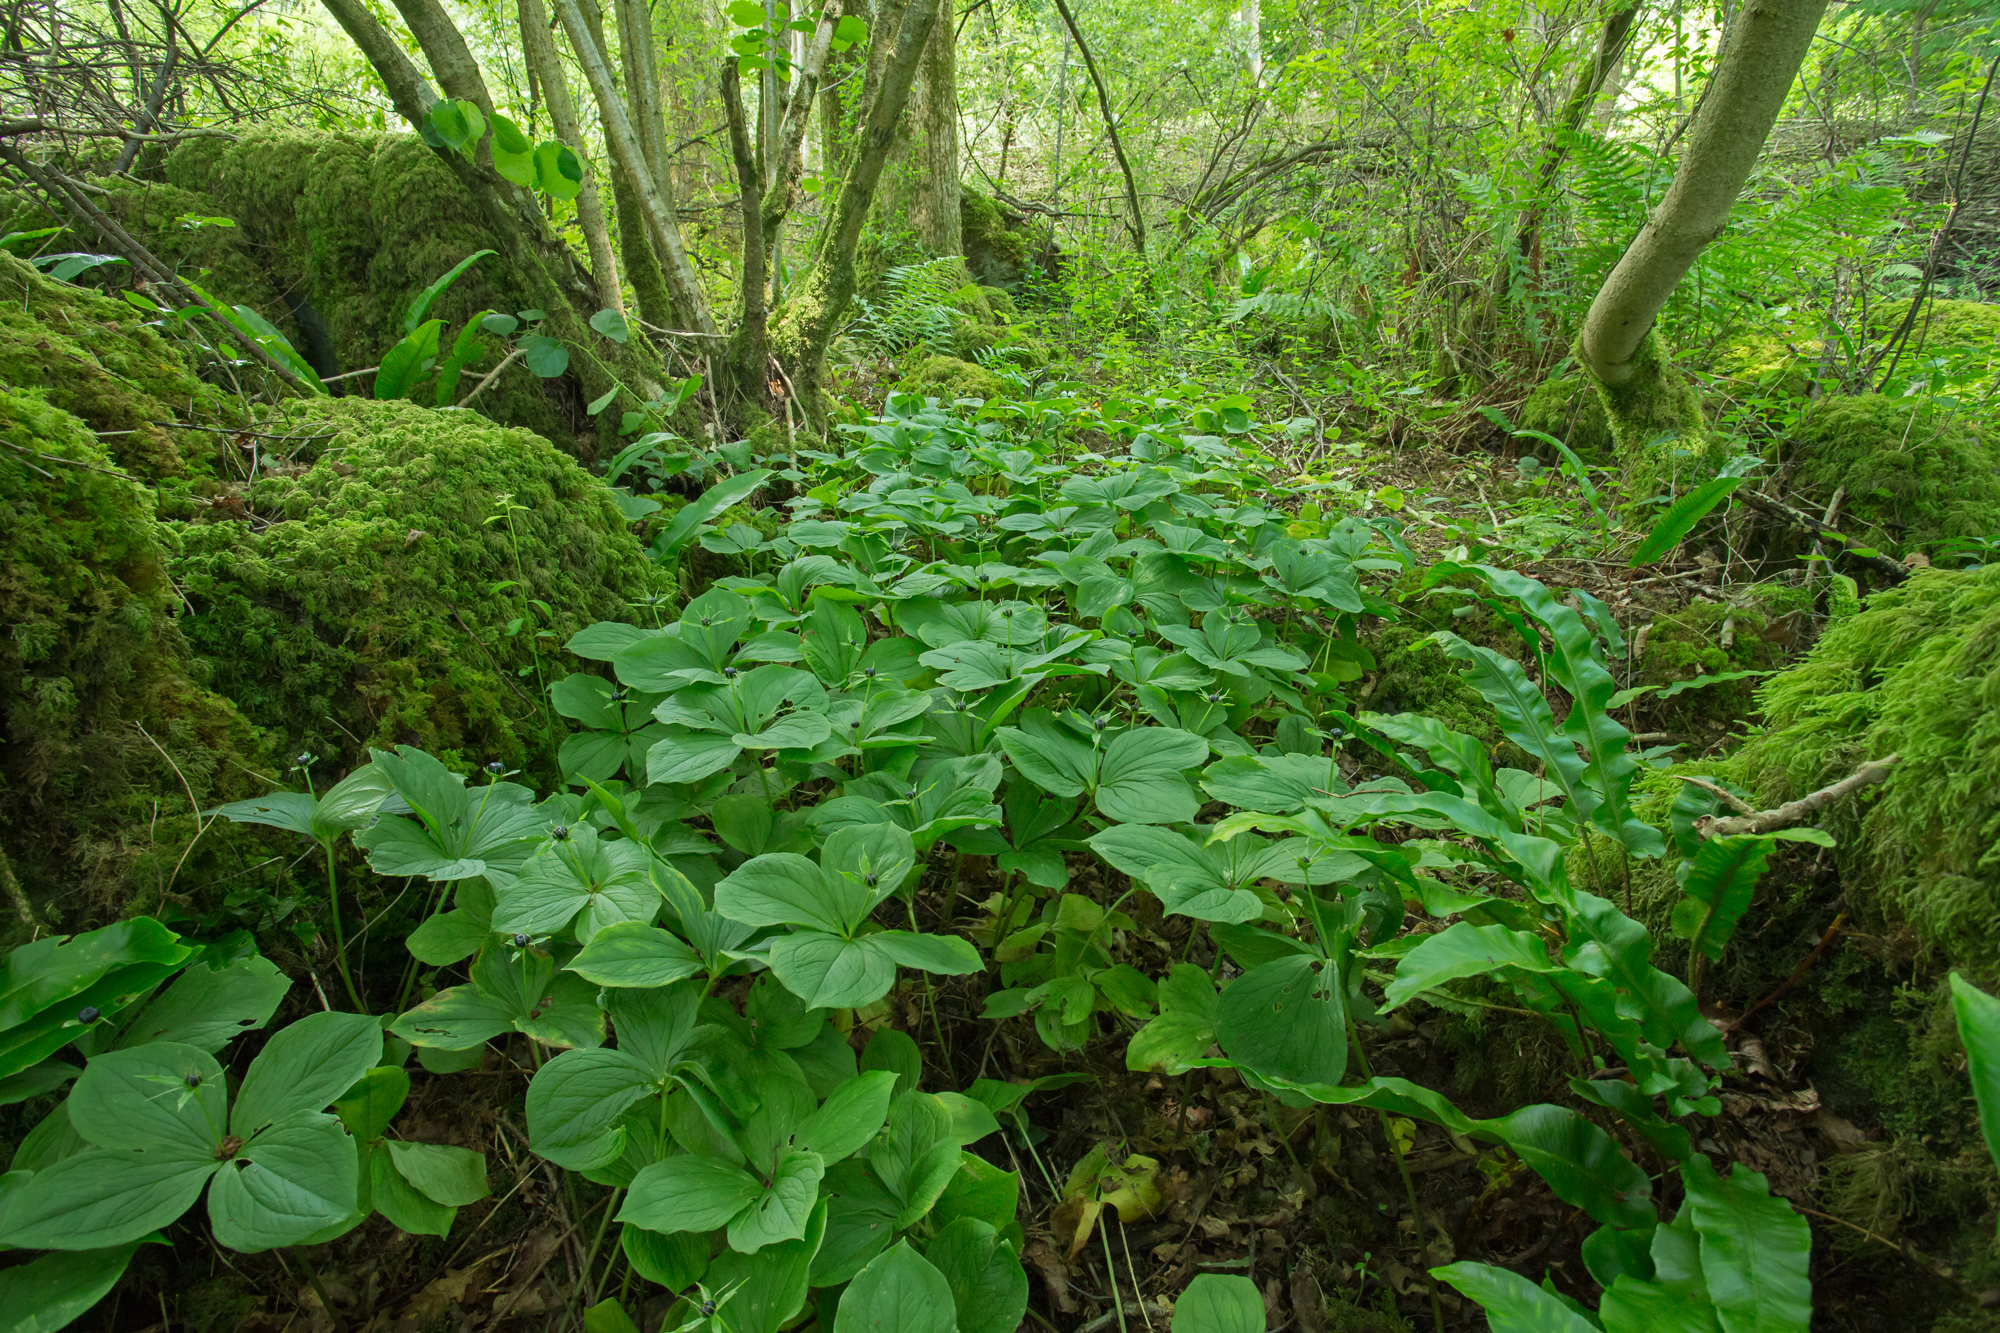 A lush stand of Herb Paris, ancient woodland indicator